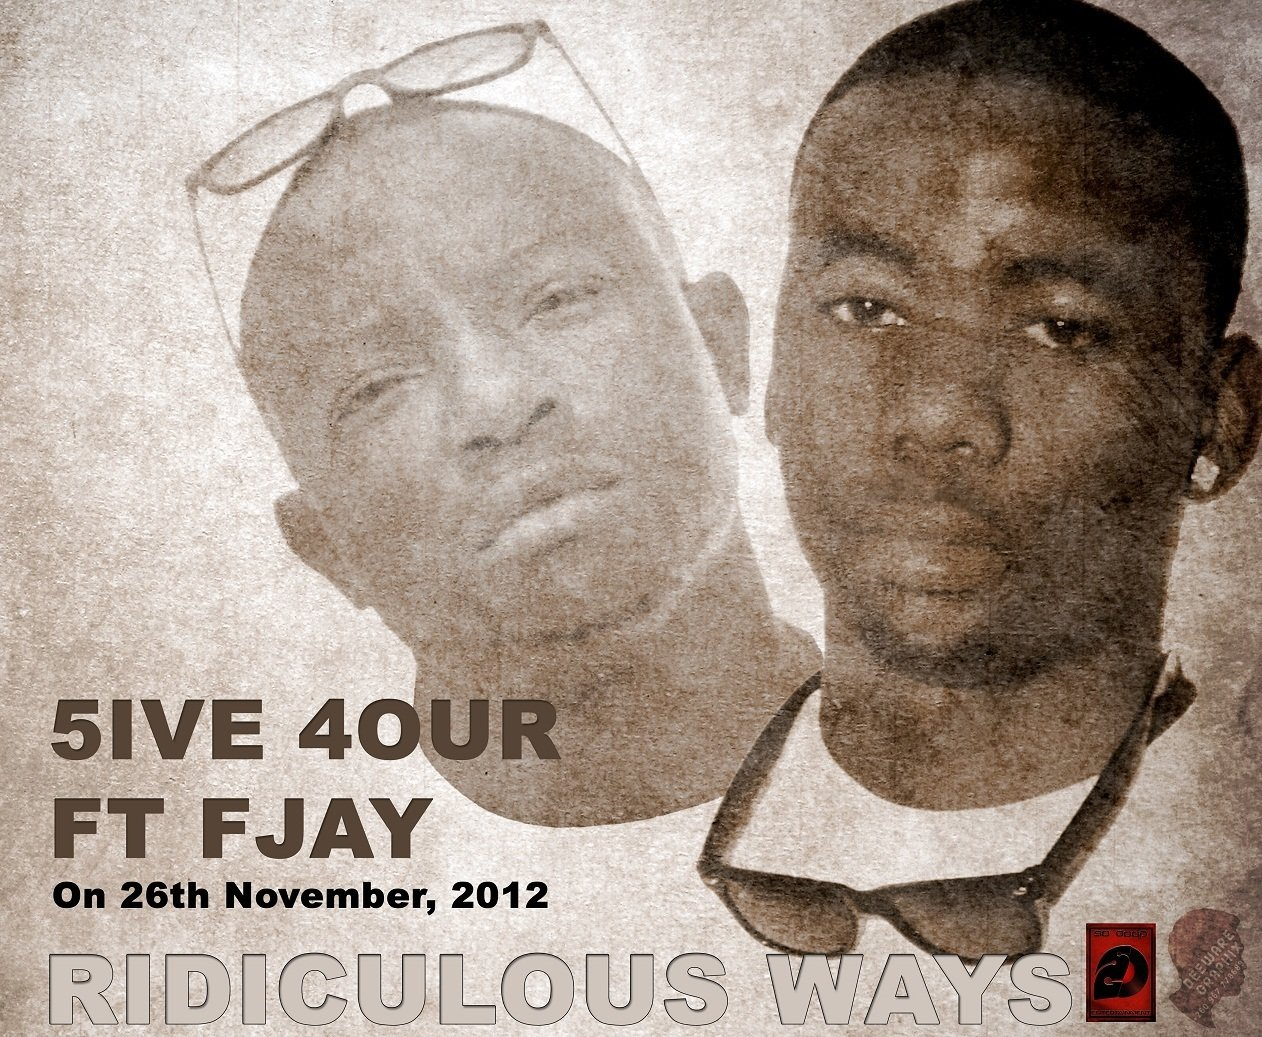 5ive 4our